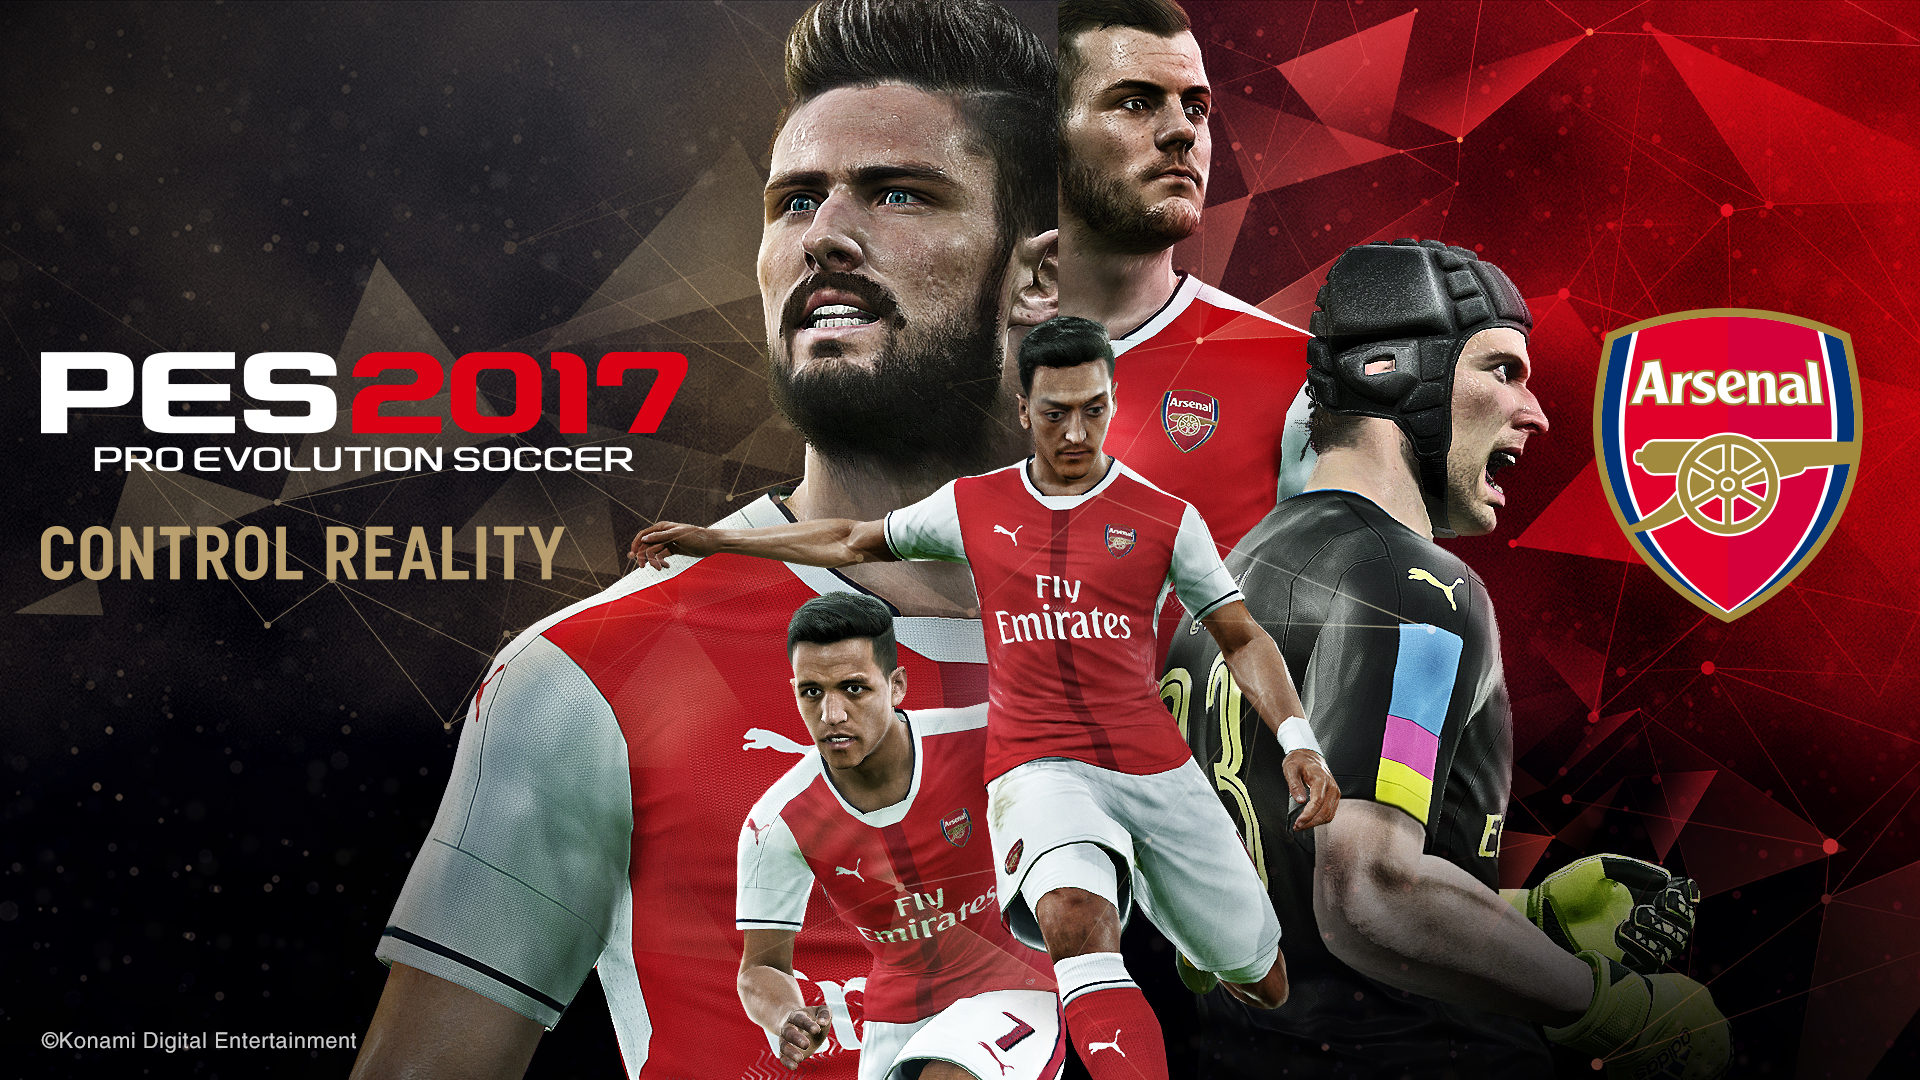 pro evolution soccer 2017 cpy crack for pc free download